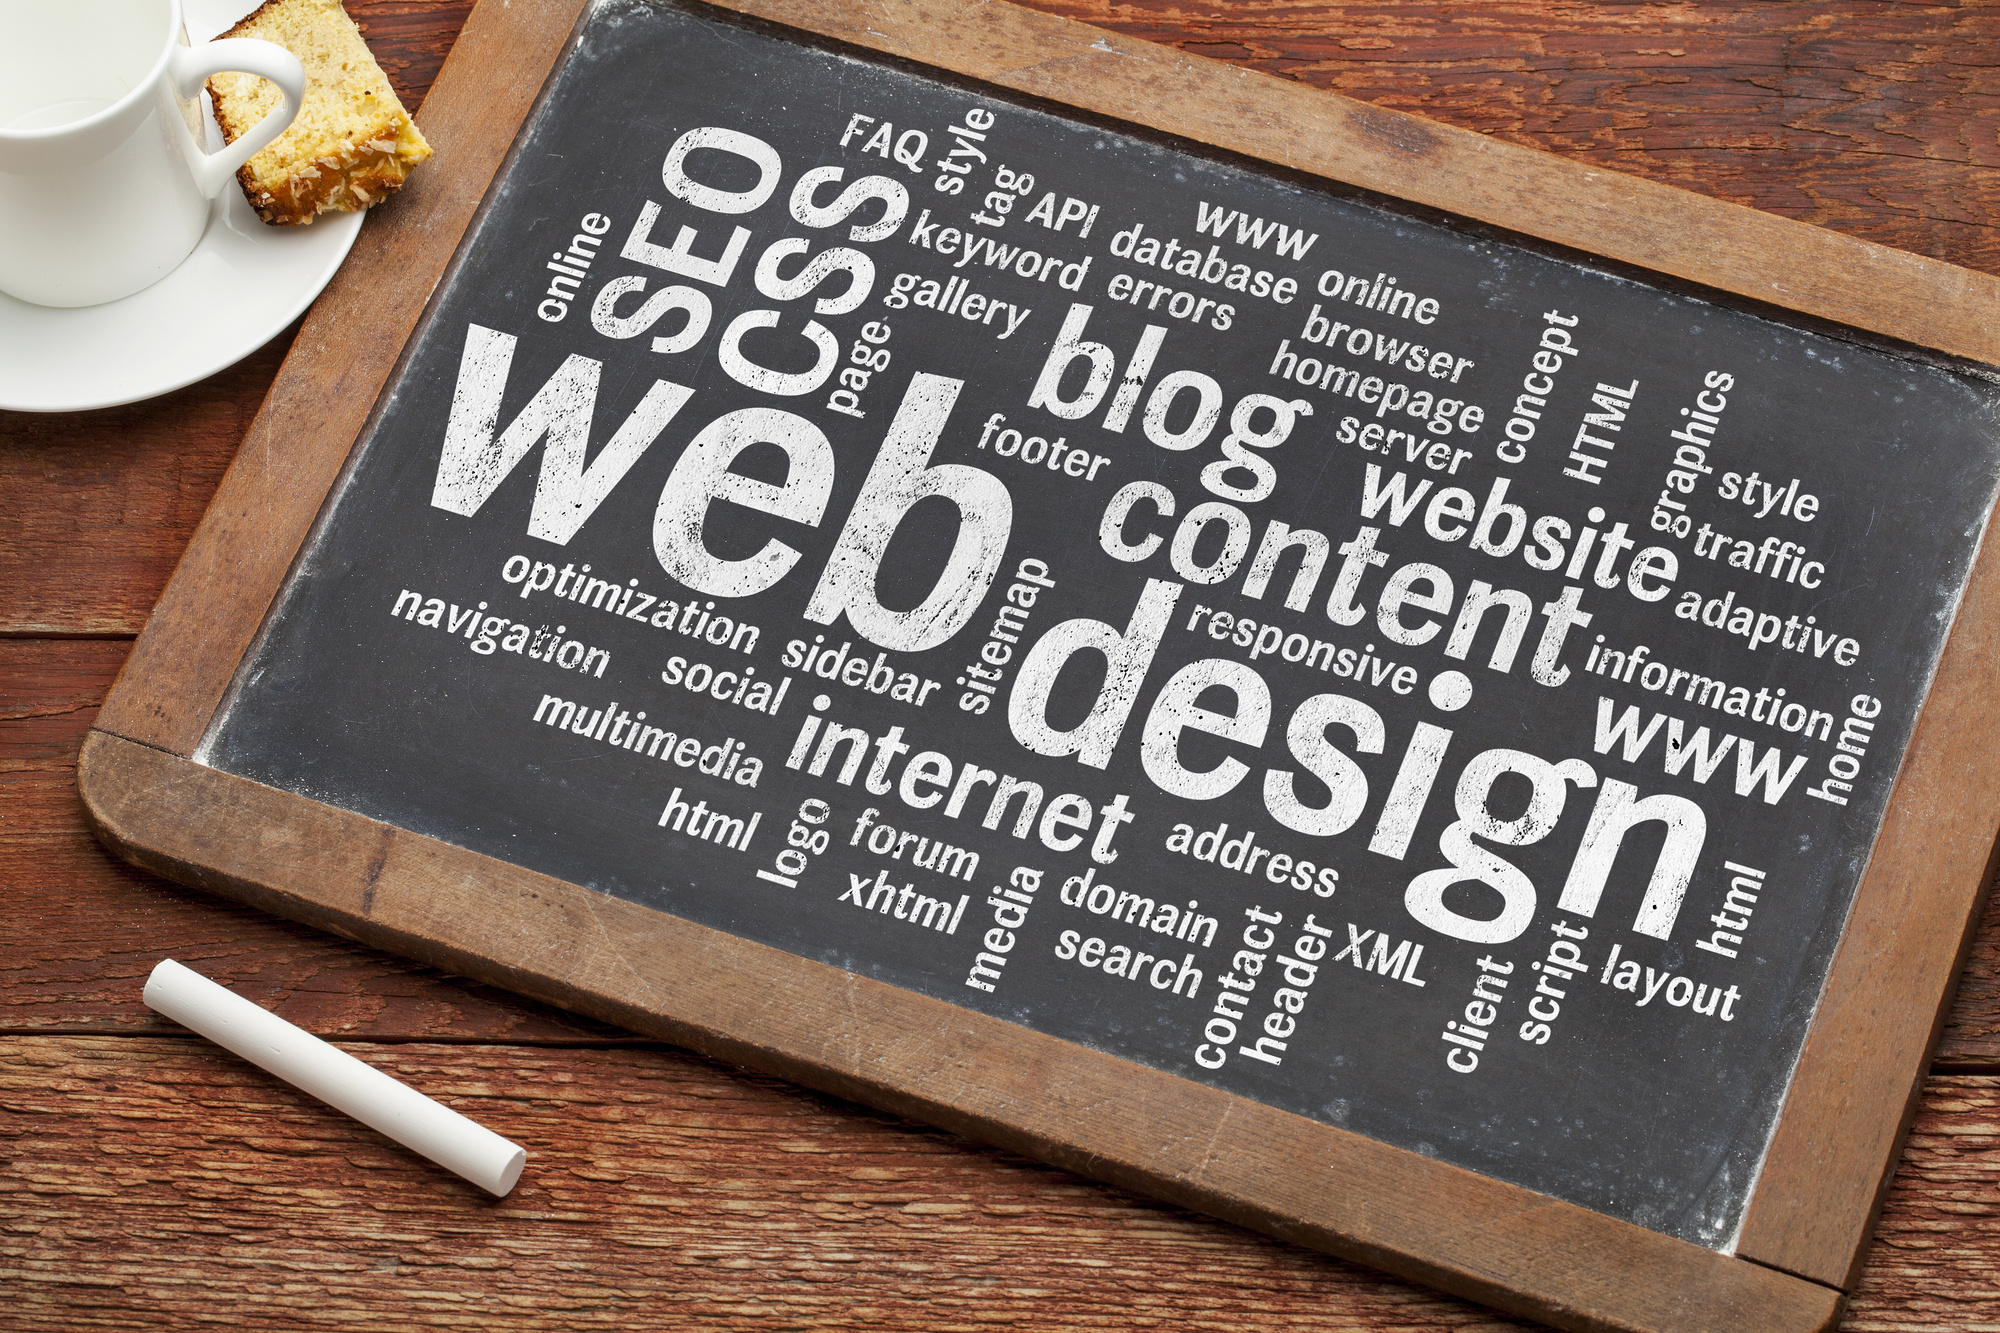 Website Redesign and SEO: How to Regain Traffic After a Redesign